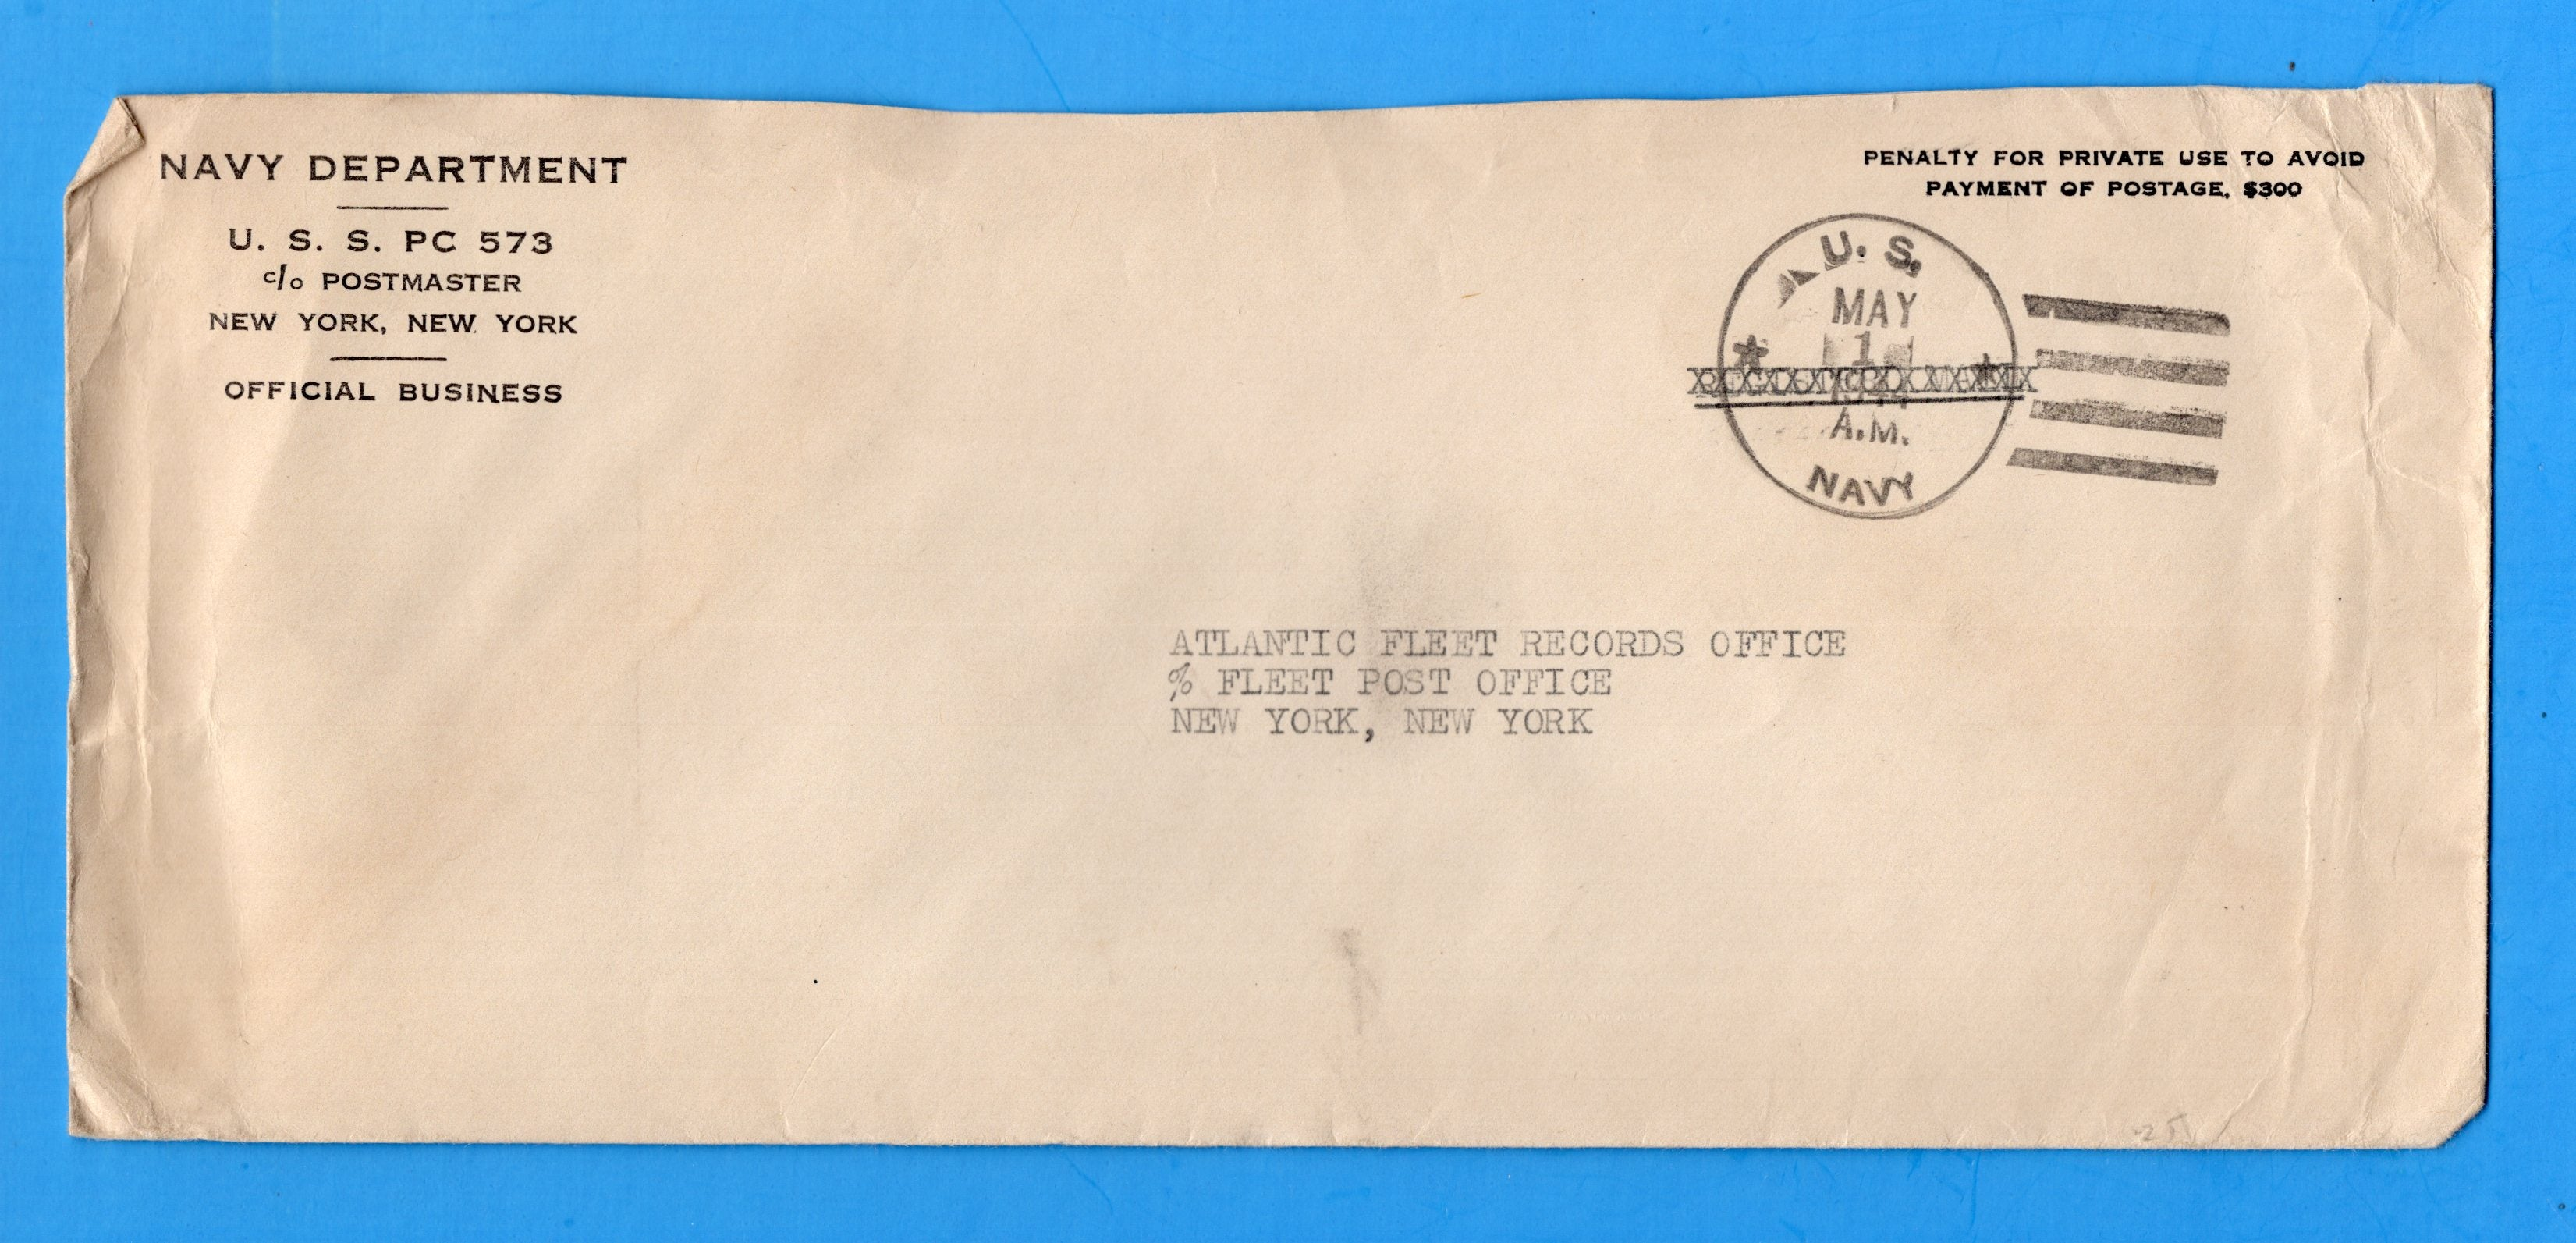 USS PC-573 Navy Department Official Mail May 1, 1944